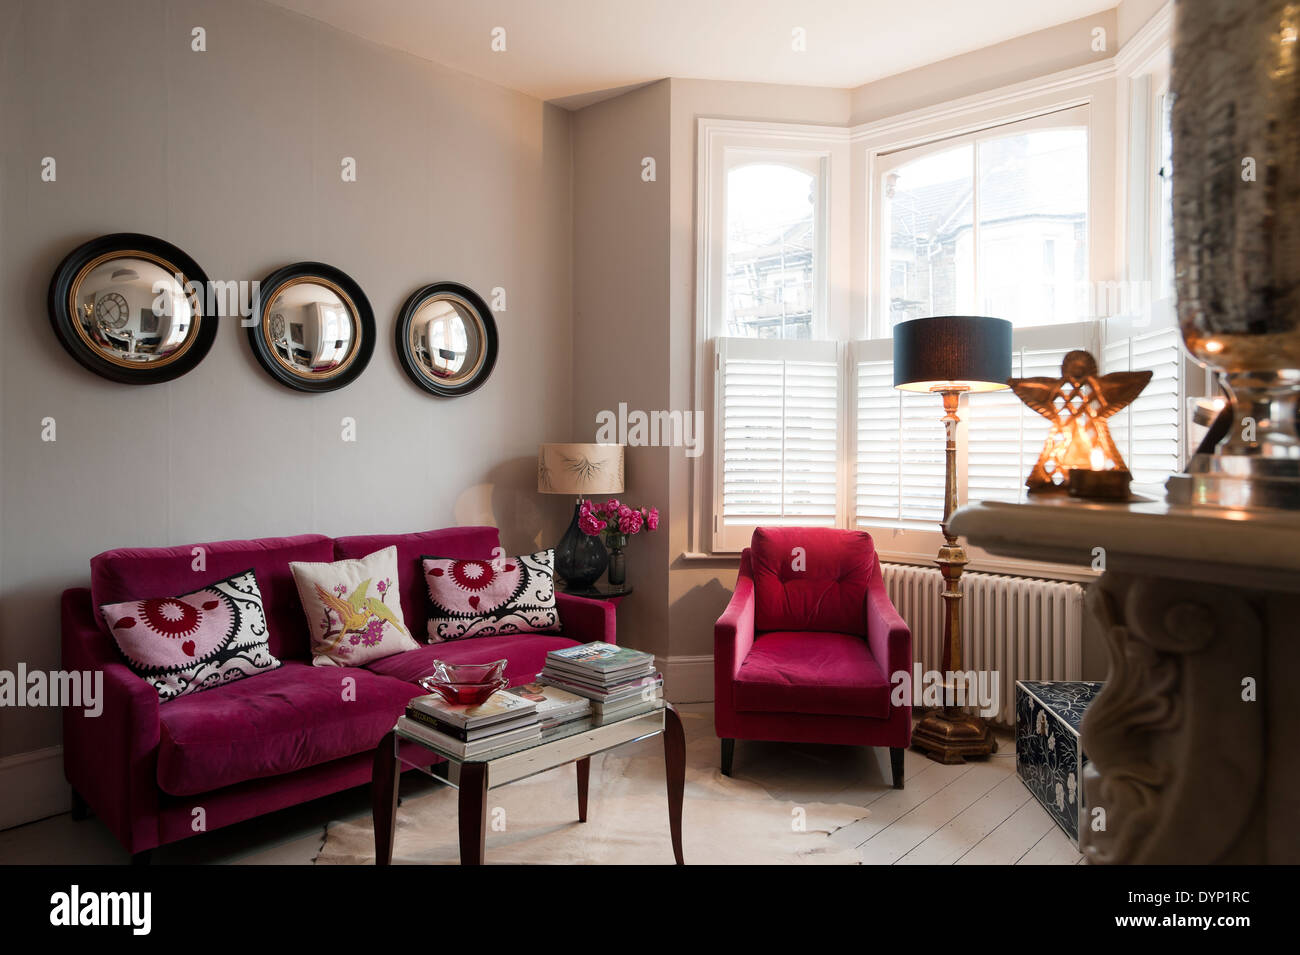 raspberry coloured velvet furniture in living room with graham and stock photo 68711200 alamy. Black Bedroom Furniture Sets. Home Design Ideas